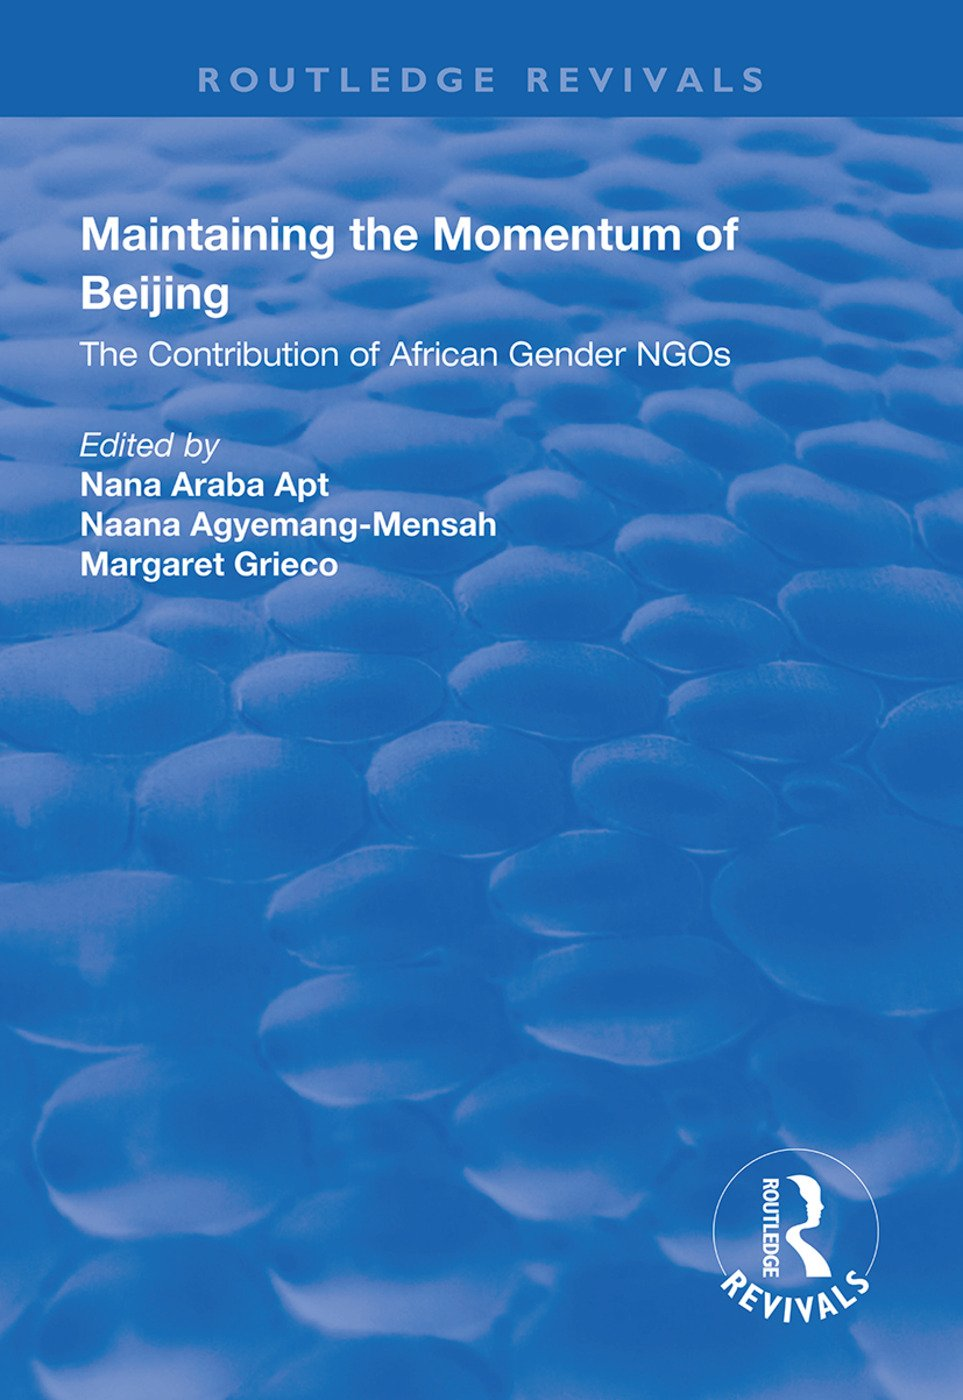 Maintaining the Momentum of Beijing: The Contribution of African Gender NGOs book cover